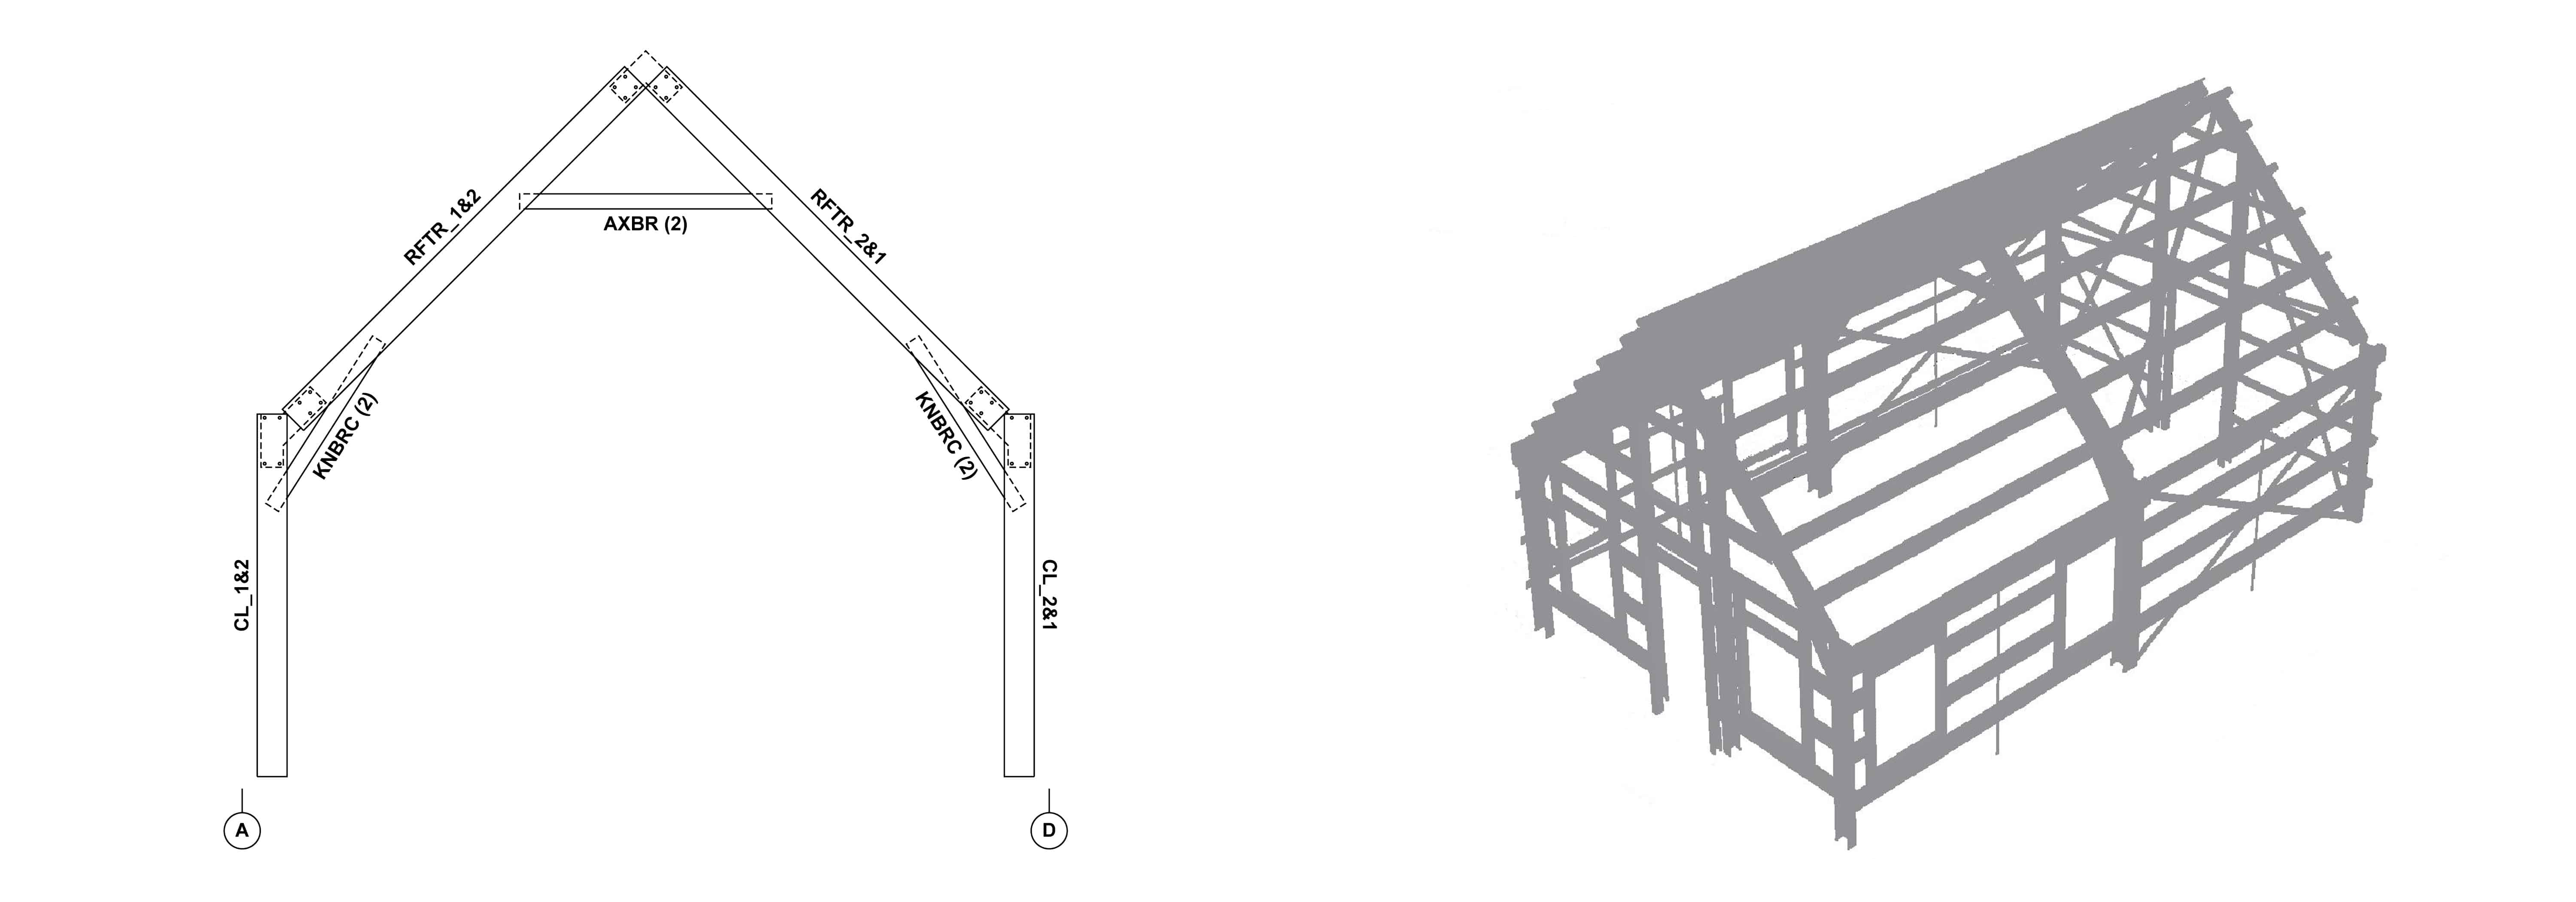 csc1838-construction-frame